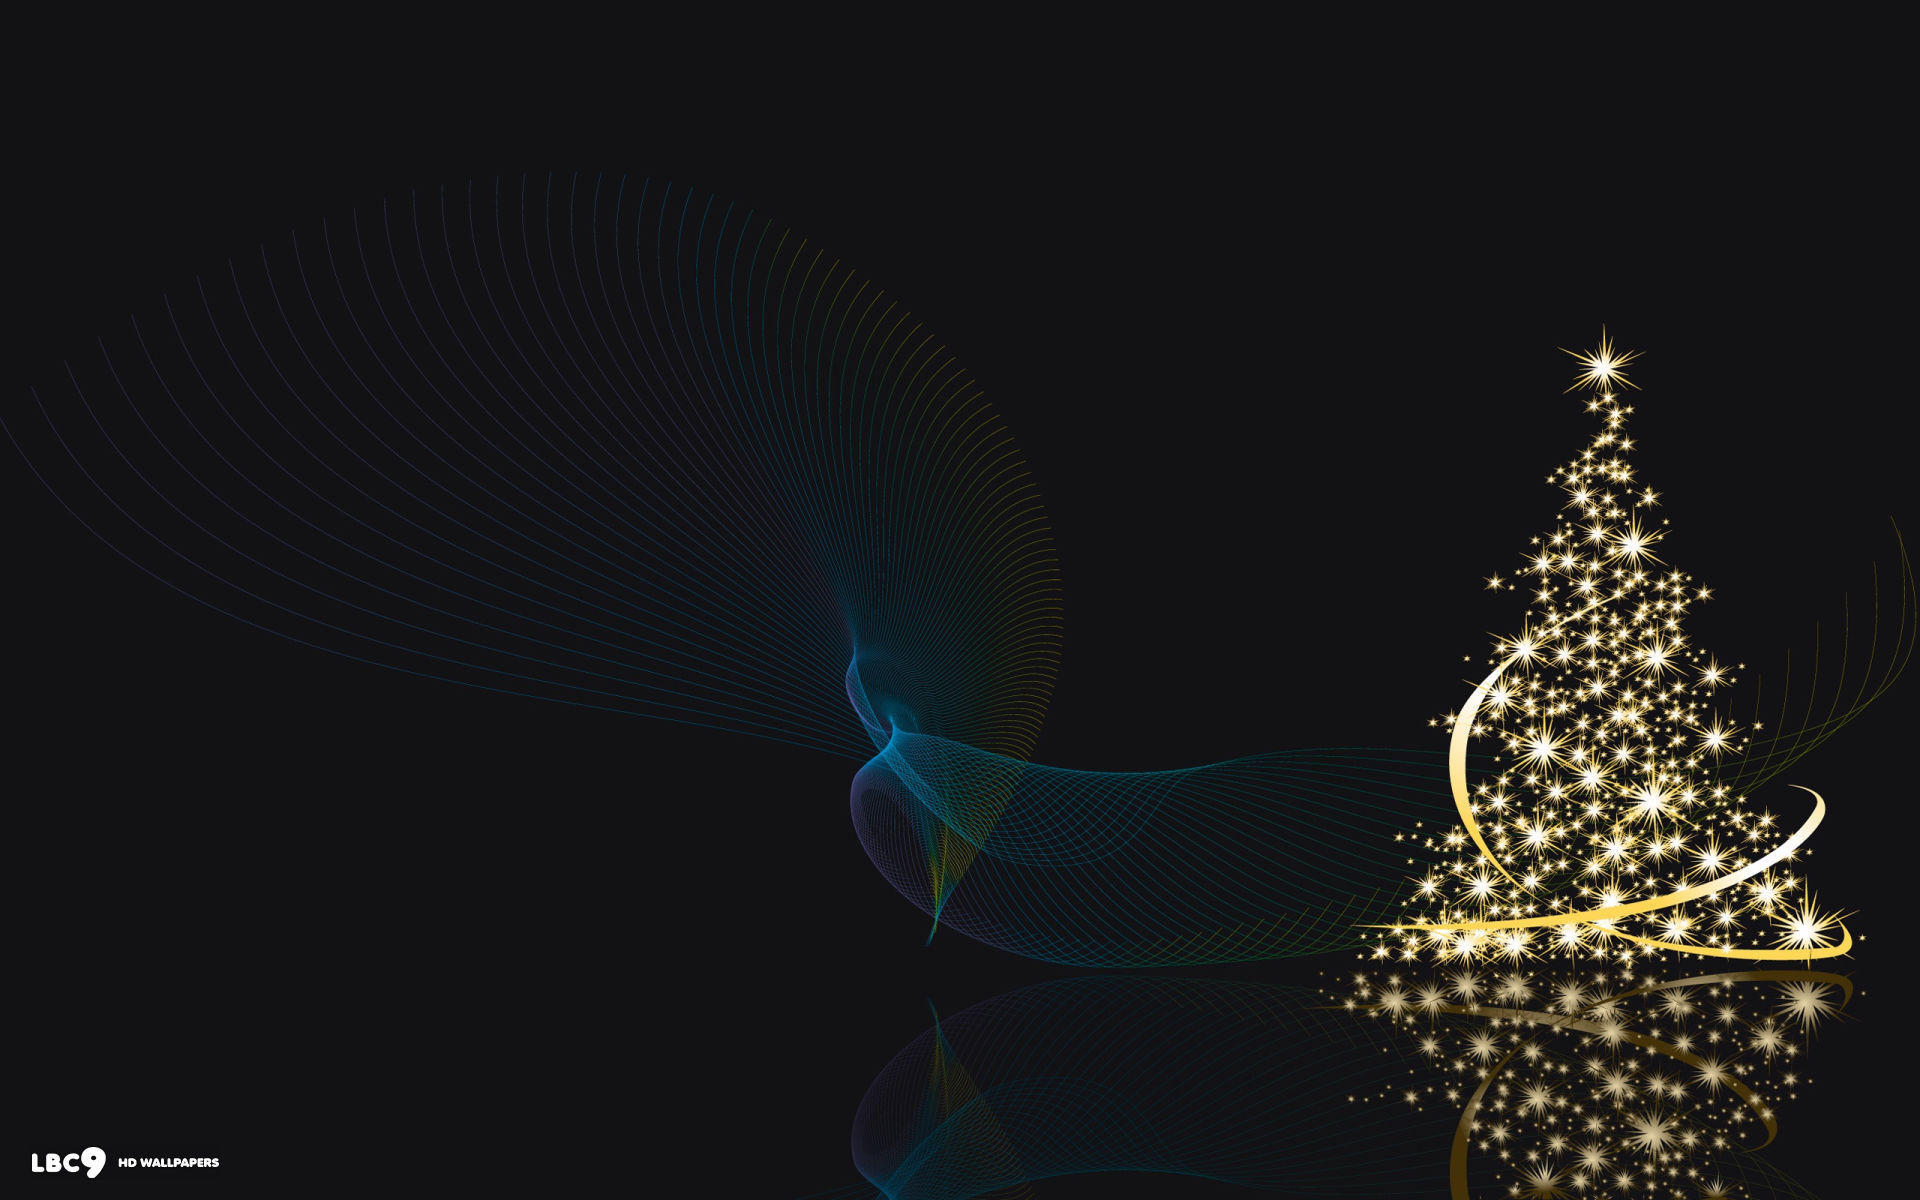 1920x1200 christmas tree shiny lights ribbons abstract holiday desktop background